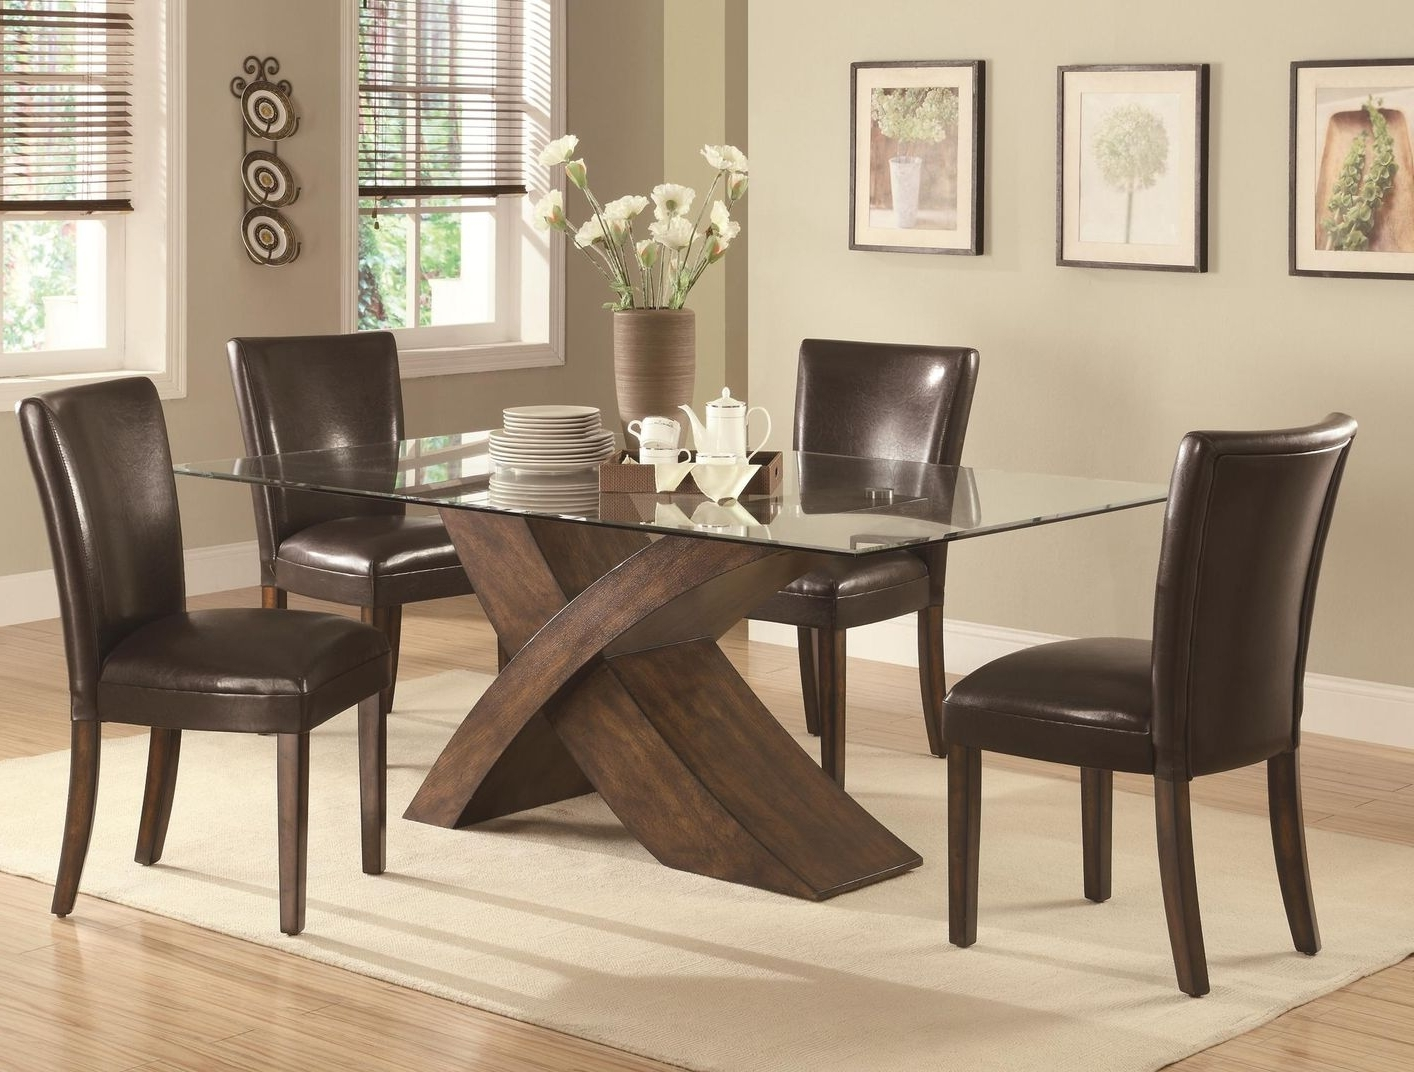 Widely Used Nessa Deep Brown Wood And Glass Dining Table Set – Steal A Sofa Throughout Wood Glass Dining Tables (View 6 of 25)